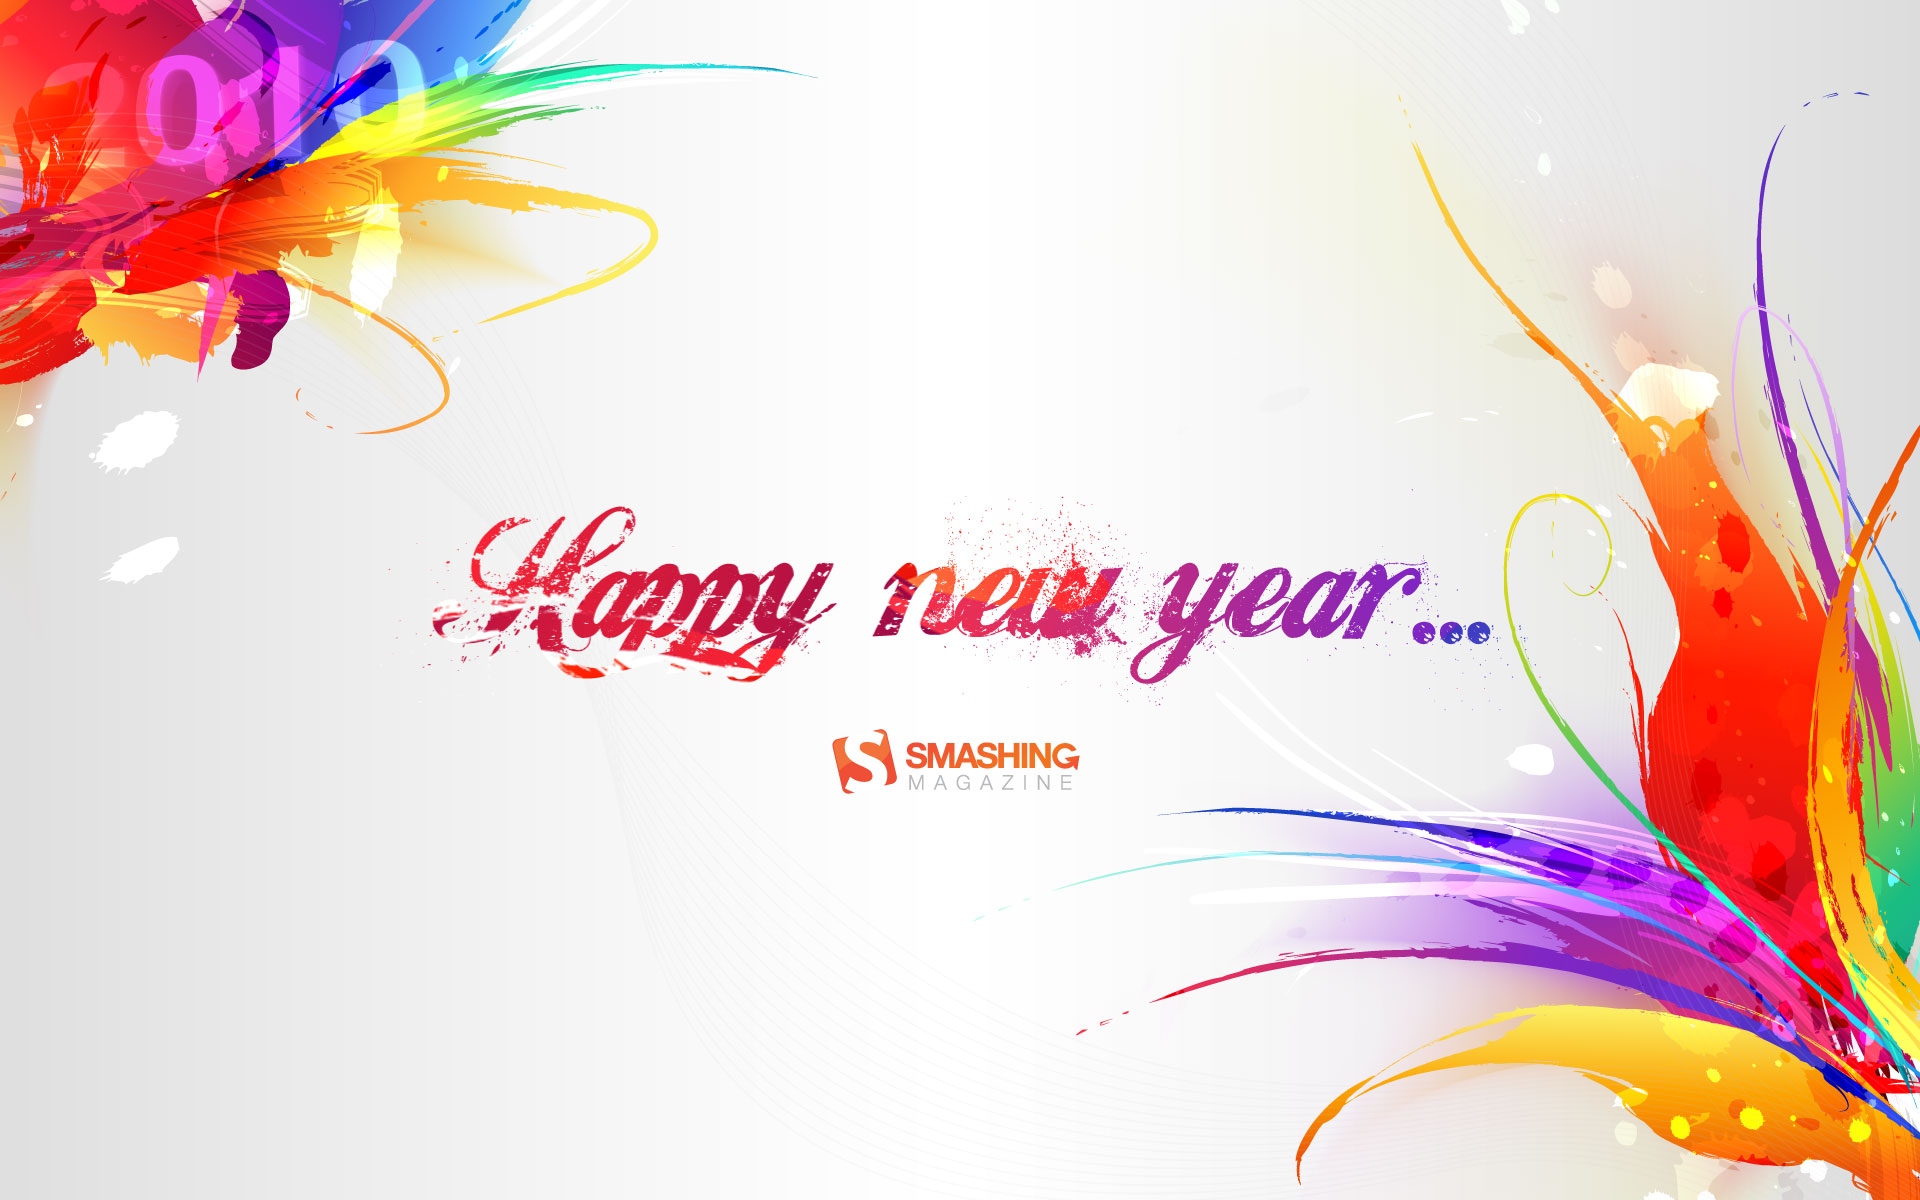 Happy New Year HD Wallpaper Happy New Year Wallpapers for Desktop 1920x1200